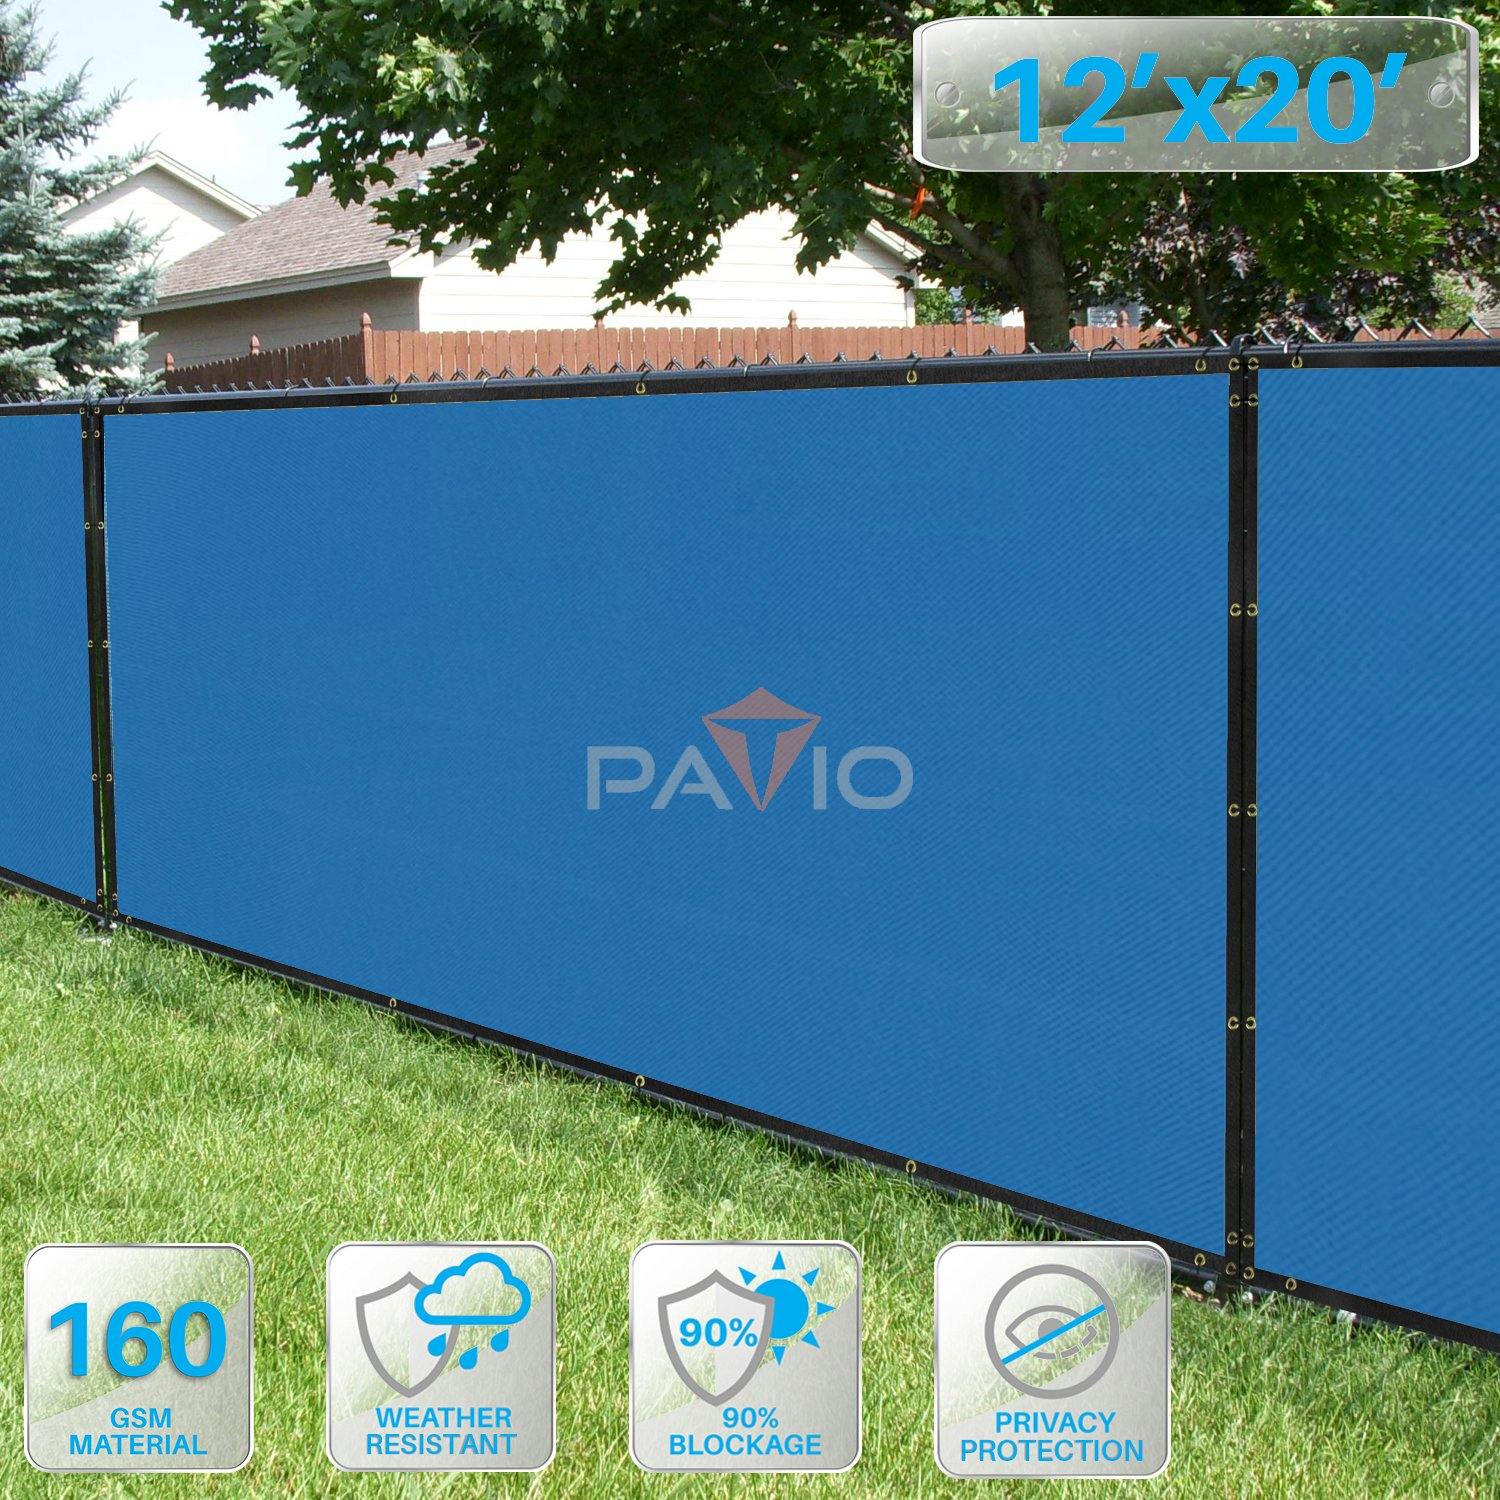 Patio Fence Privacy Screen 12' x 20', Pergola Shade Cover Canopy Sun Block, Heavy Duty Fence Privacy Netting, Commercial Grade Privacy Fencing, 180 GSM, 90% Privacy Blockage (Blue)